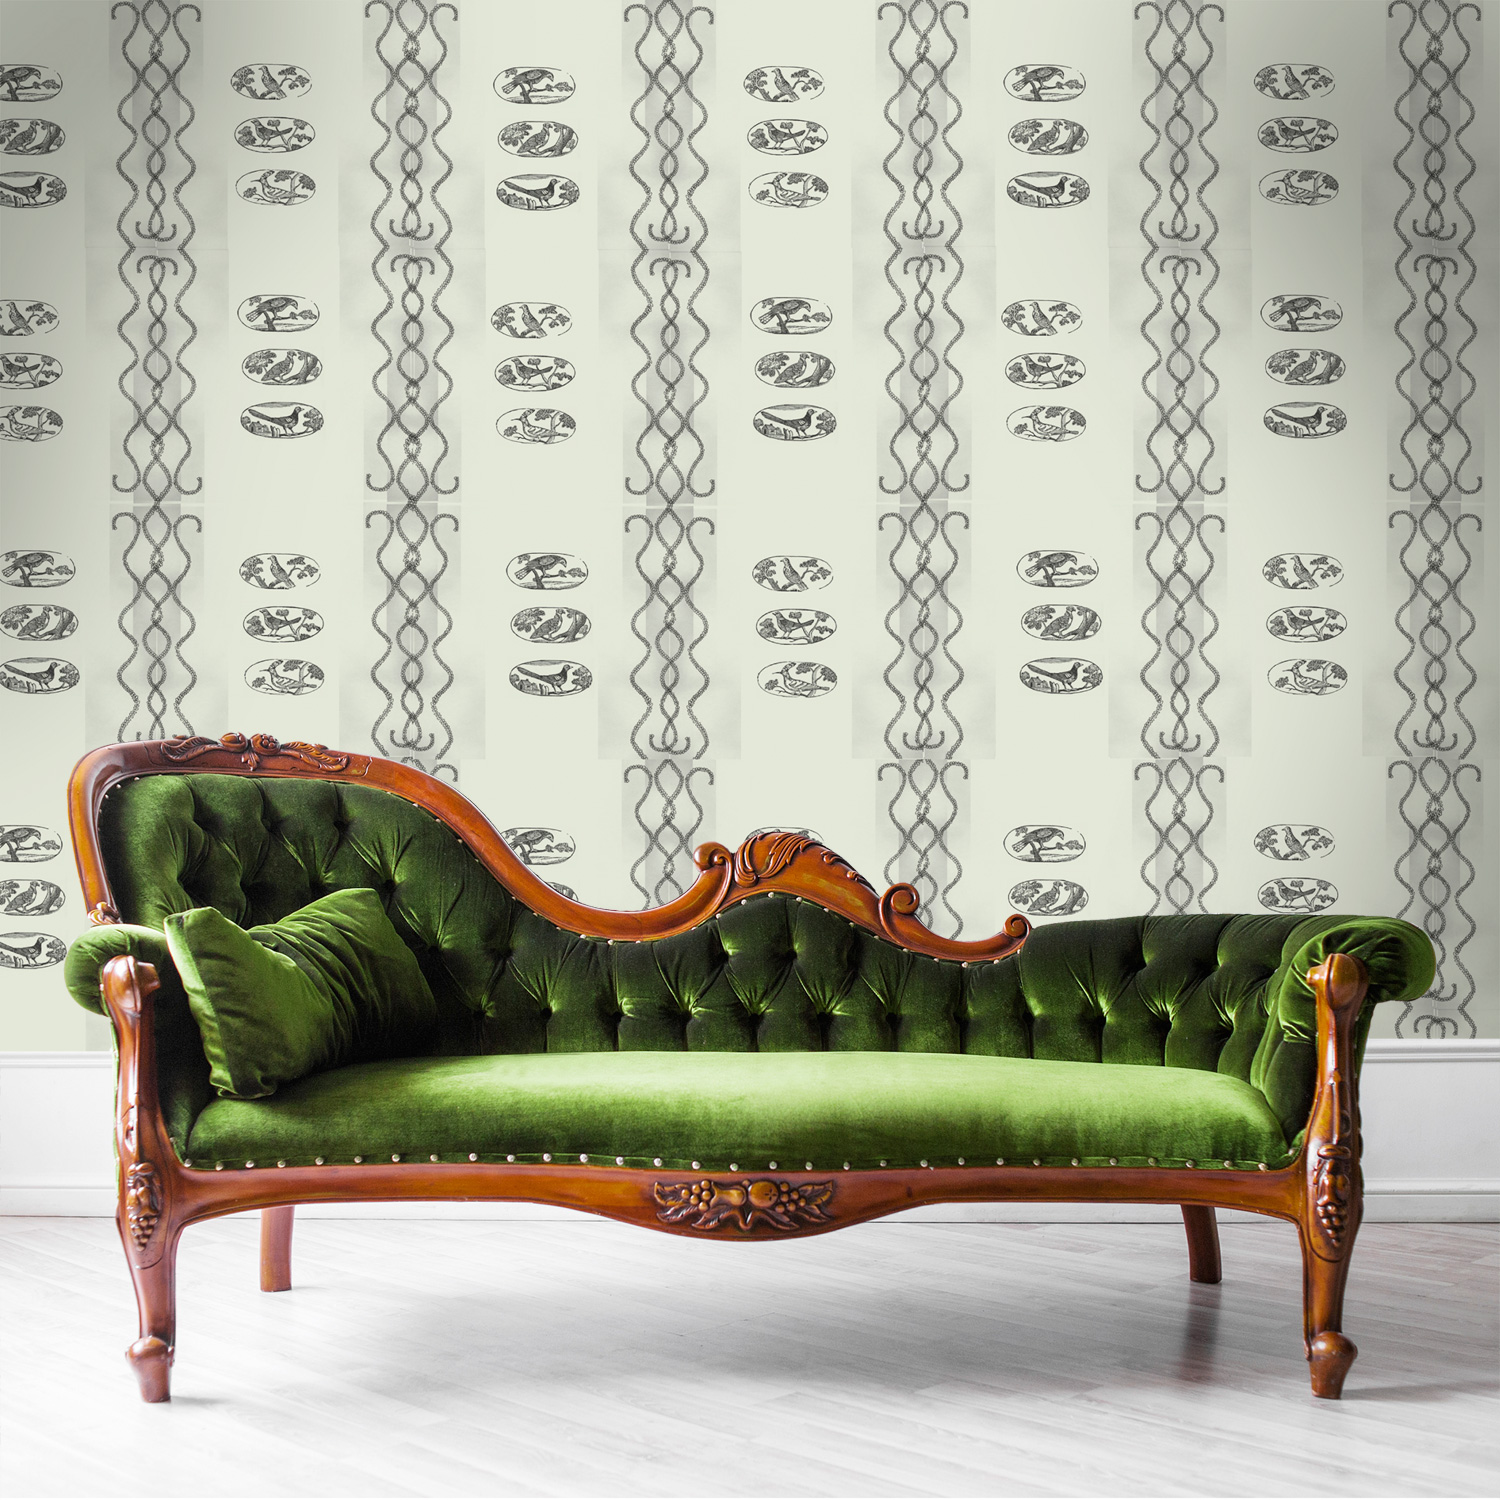 Green-Velvet-Fainting-Couch-VIRGINIA-gray.jpg